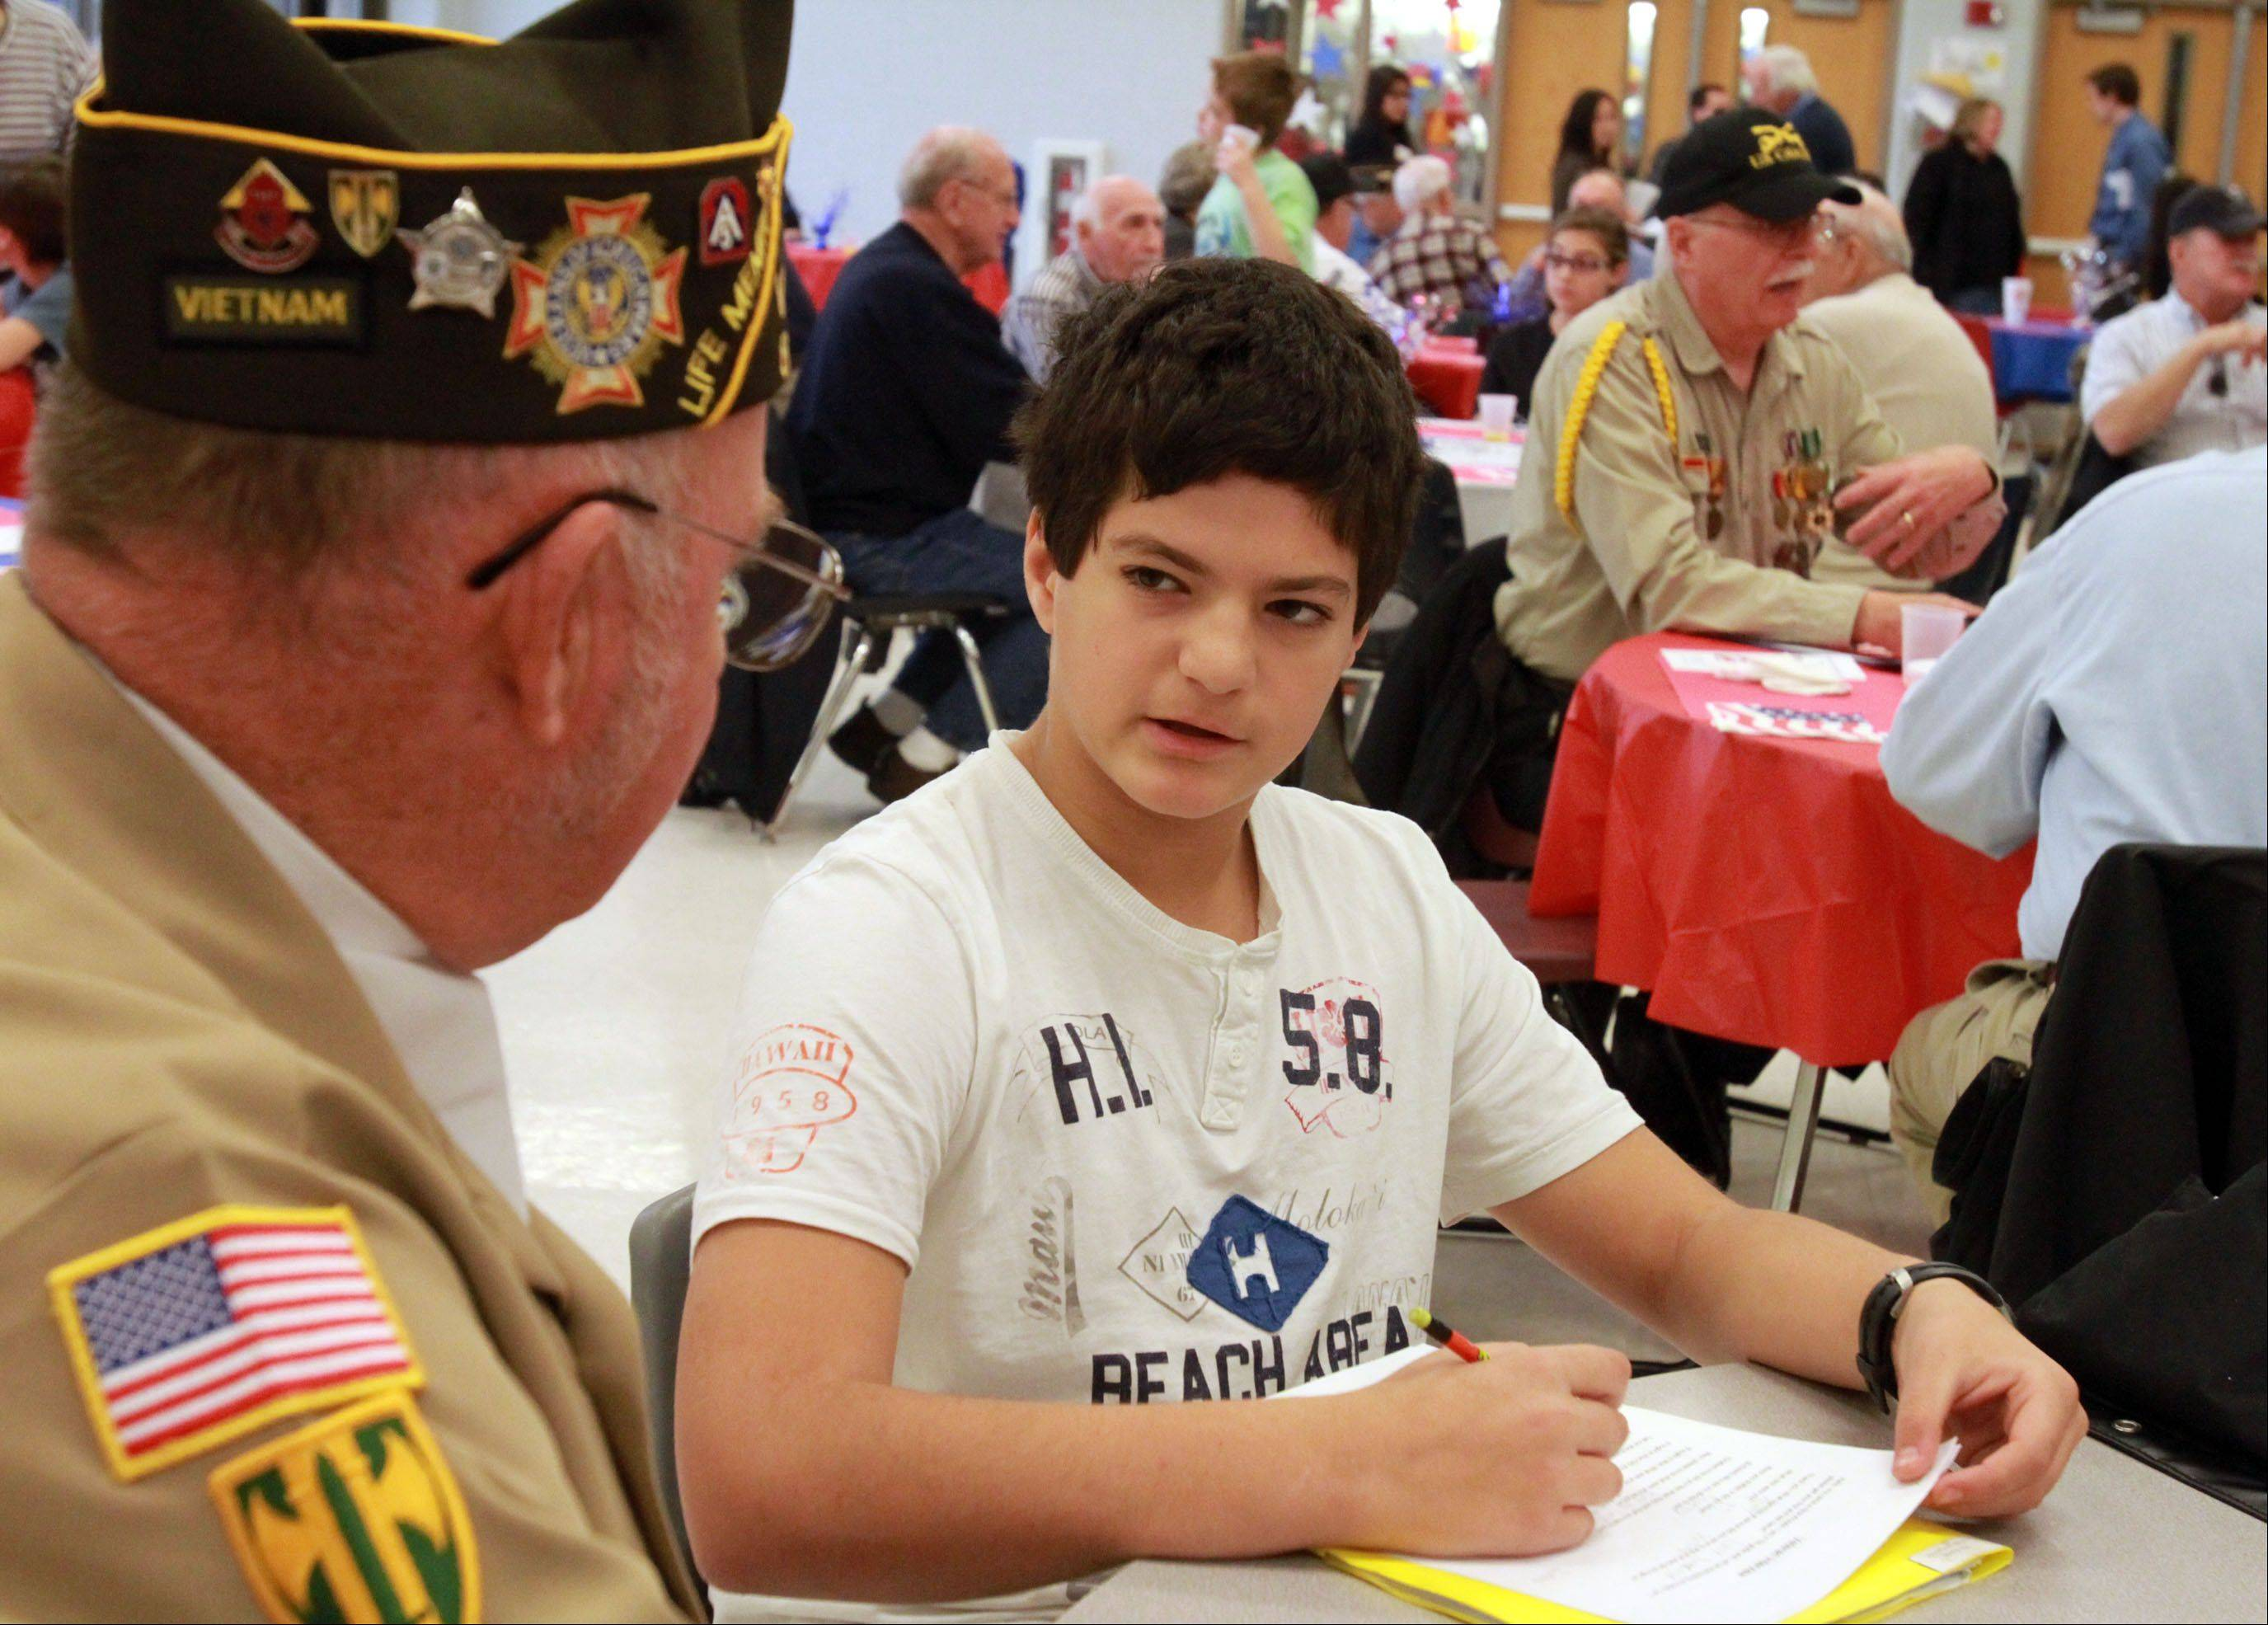 Seventh-grade student Nick Khaytin interviews Tony Kennedy of Libertyville of VFW Post 8741, for his social studies class, after a Veteran's Day breakfast and program at Hawthorn Middle School in Vernon Hills on Friday, November 9, 2012.